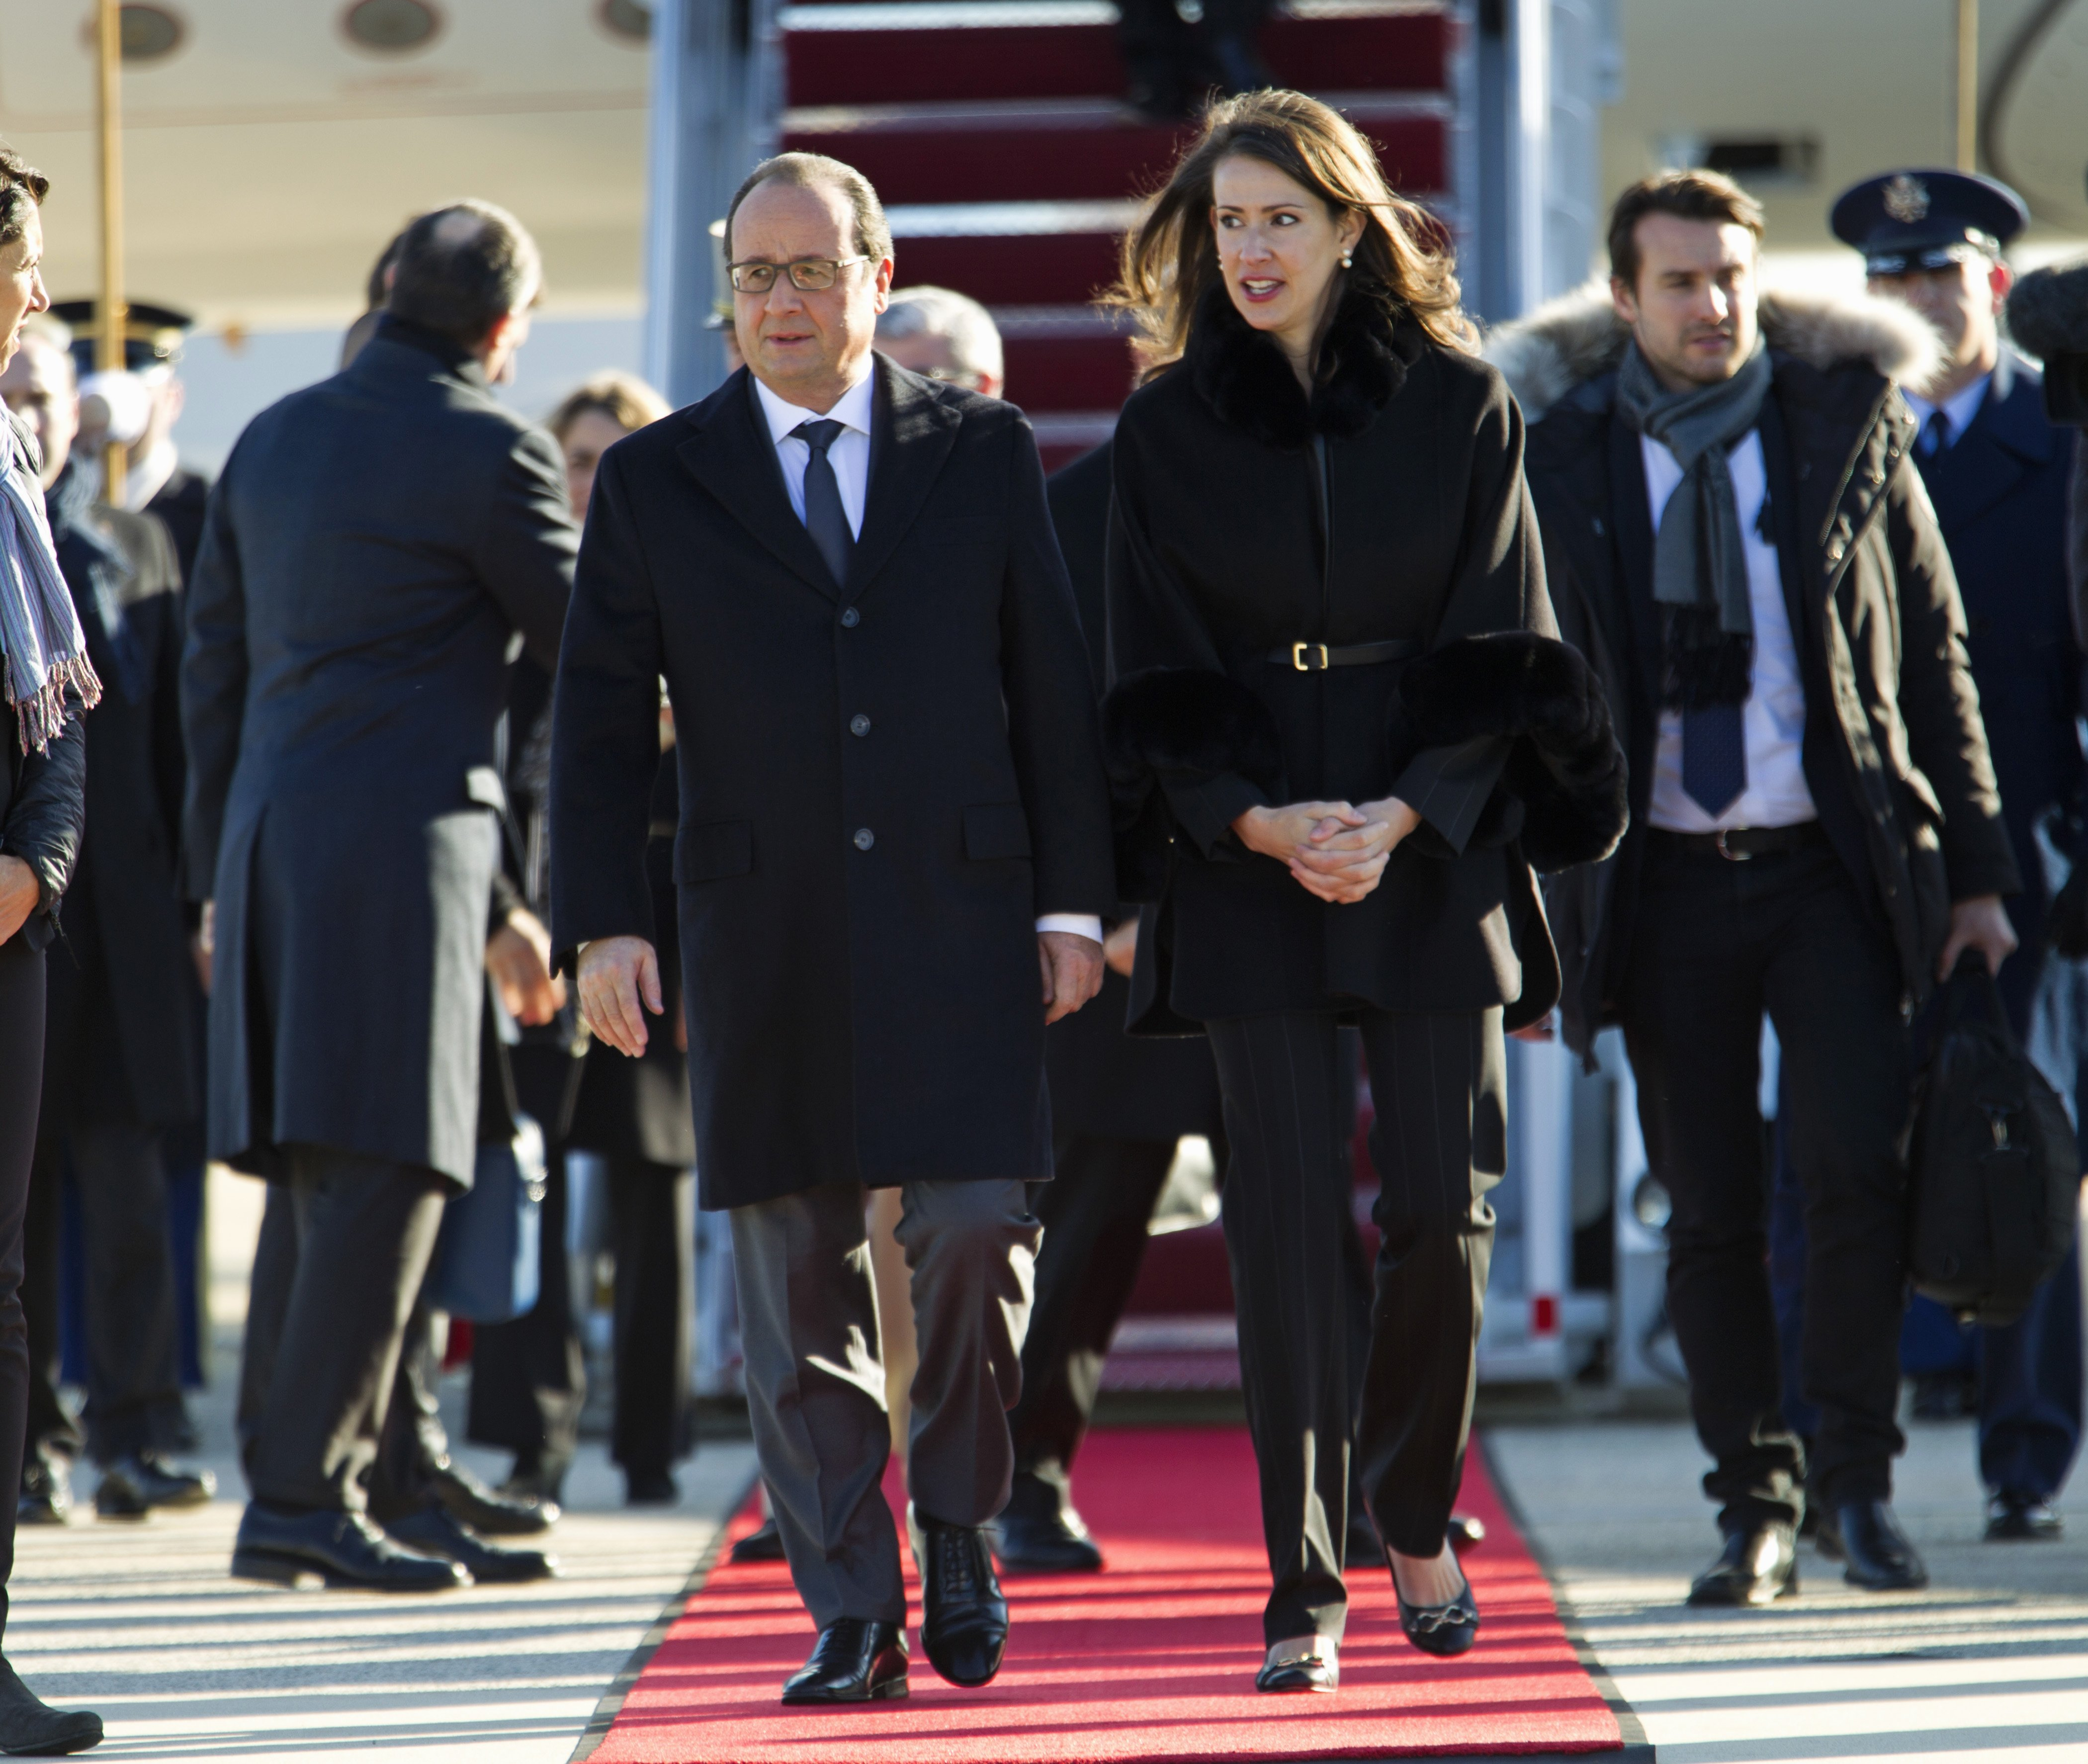 François Hollande is accompanied by U.S. Deputy Chief of Protocol Natalie Jones, upon his arrival at Andrews Air Force Base, Md. on Nov. 24, 2015.